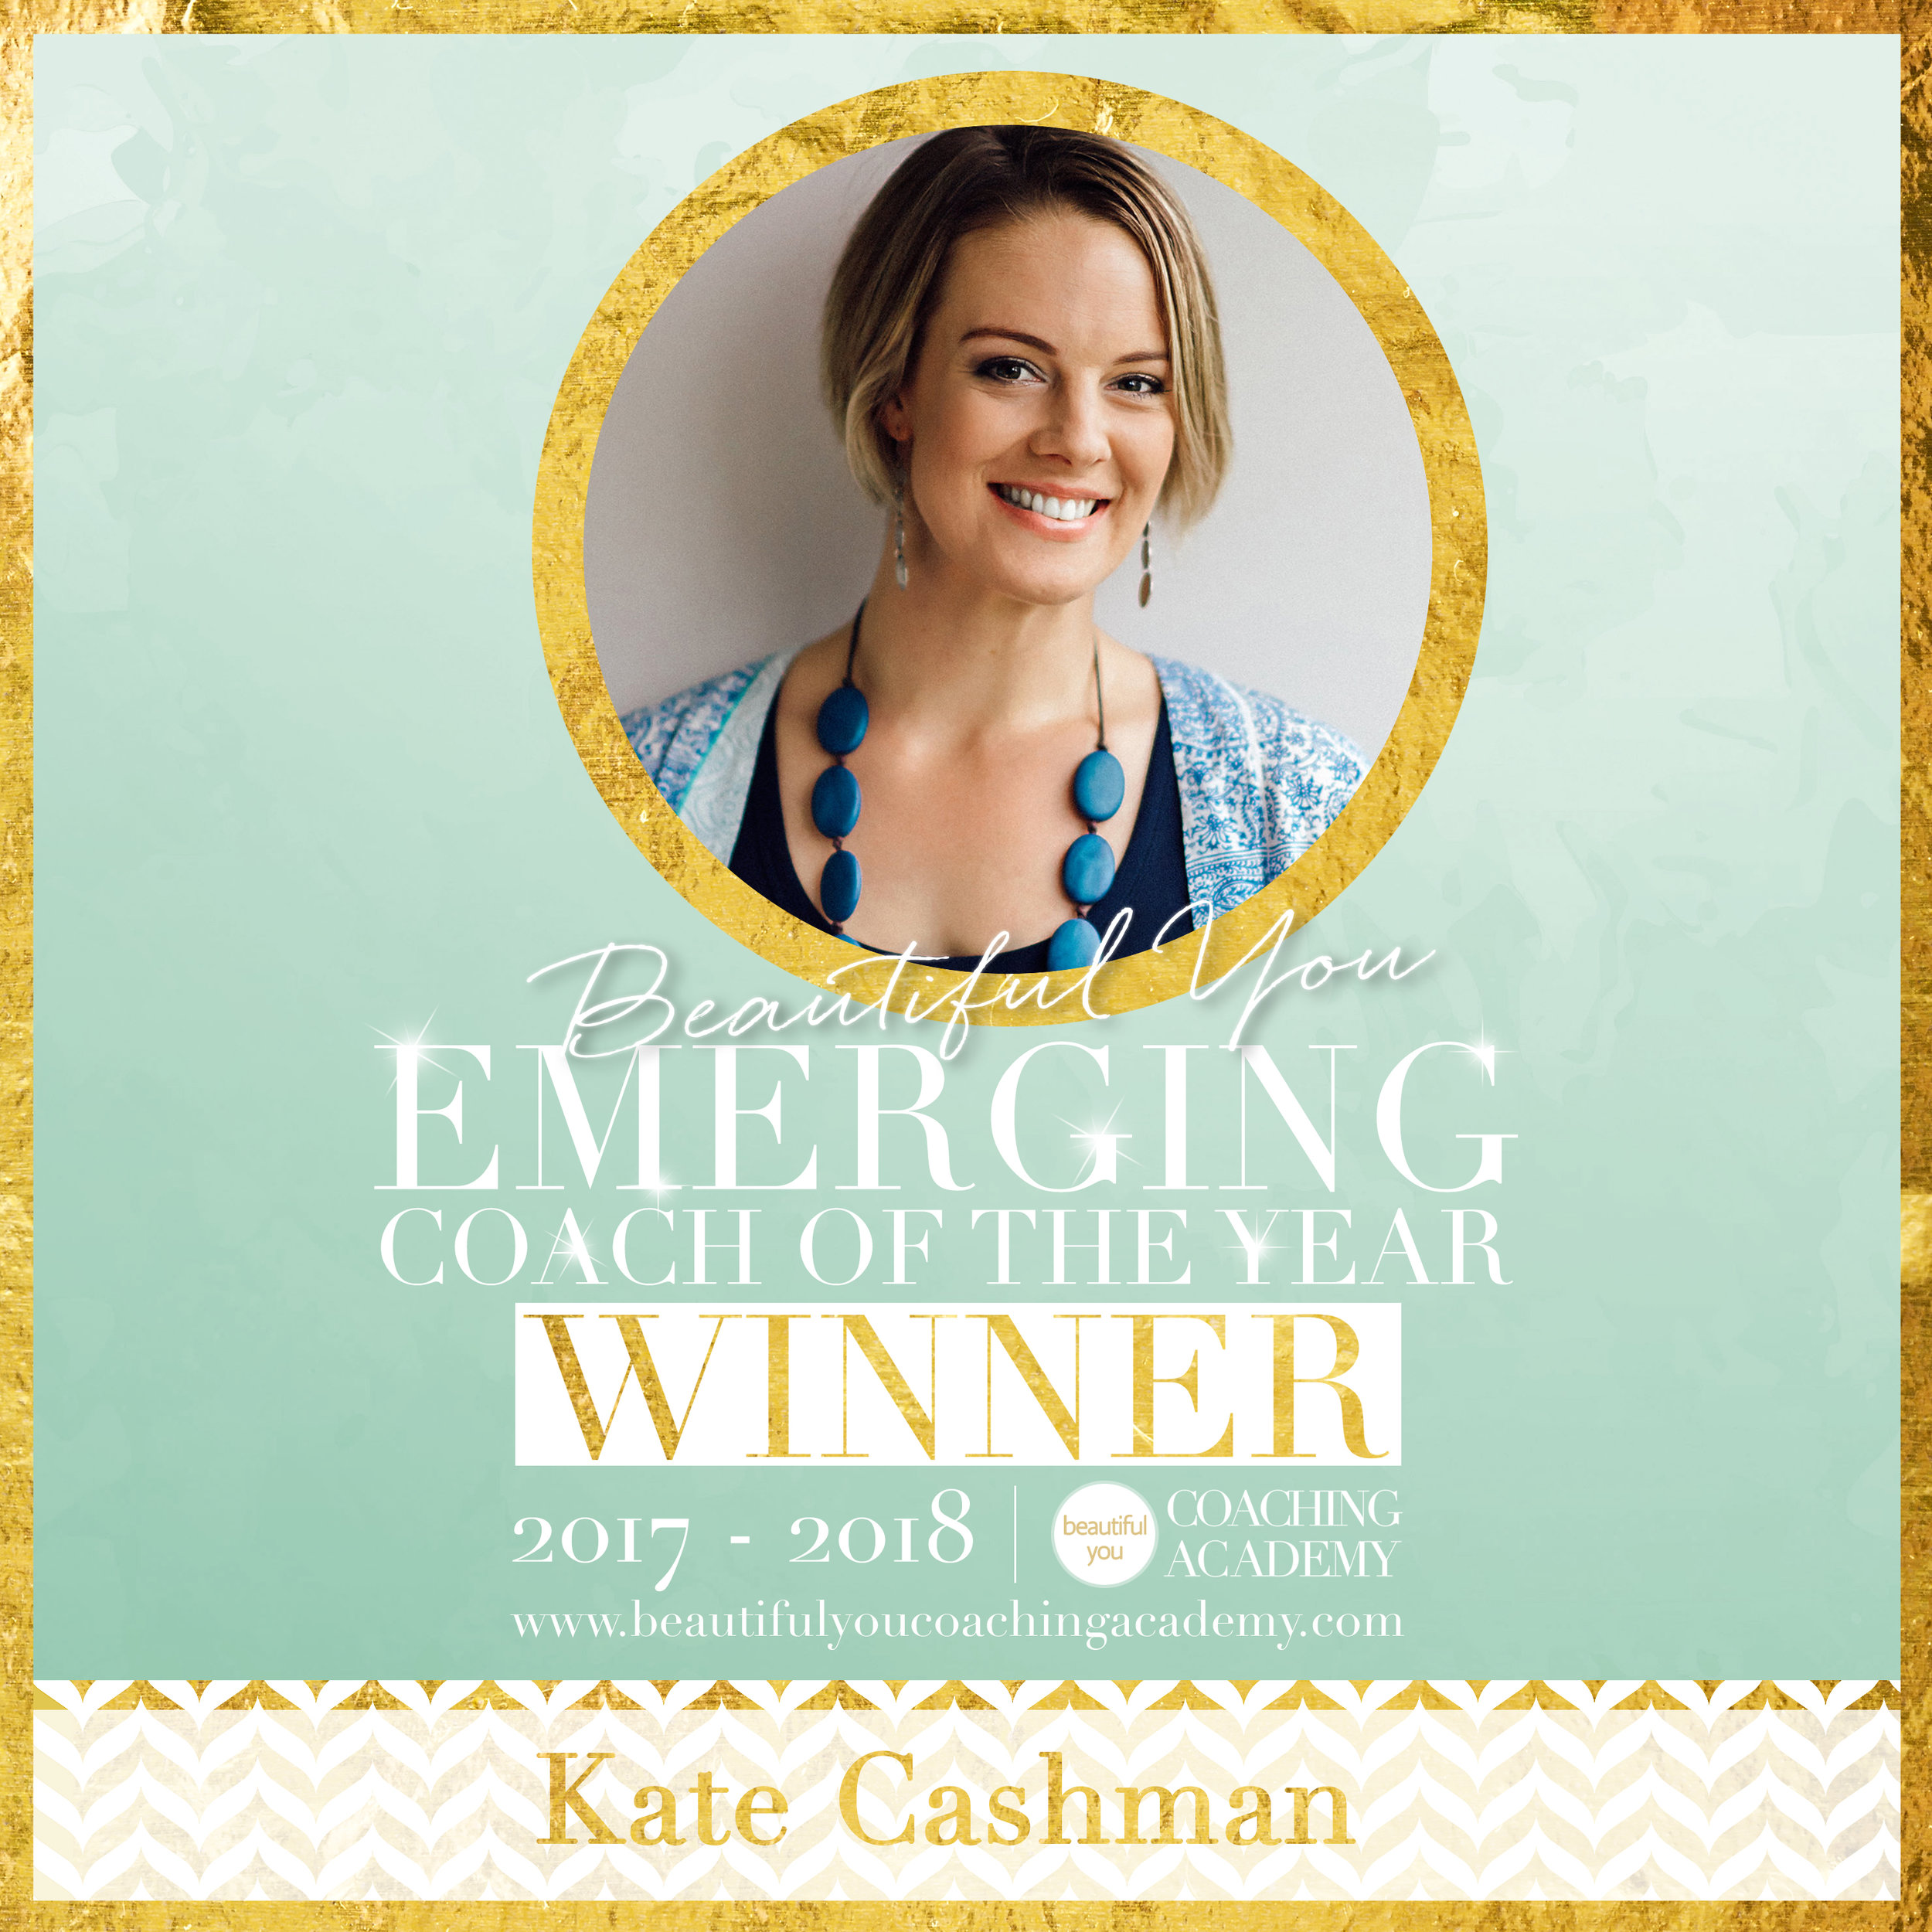 EmergingAward_Kate-Cashman-WINNER.jpg